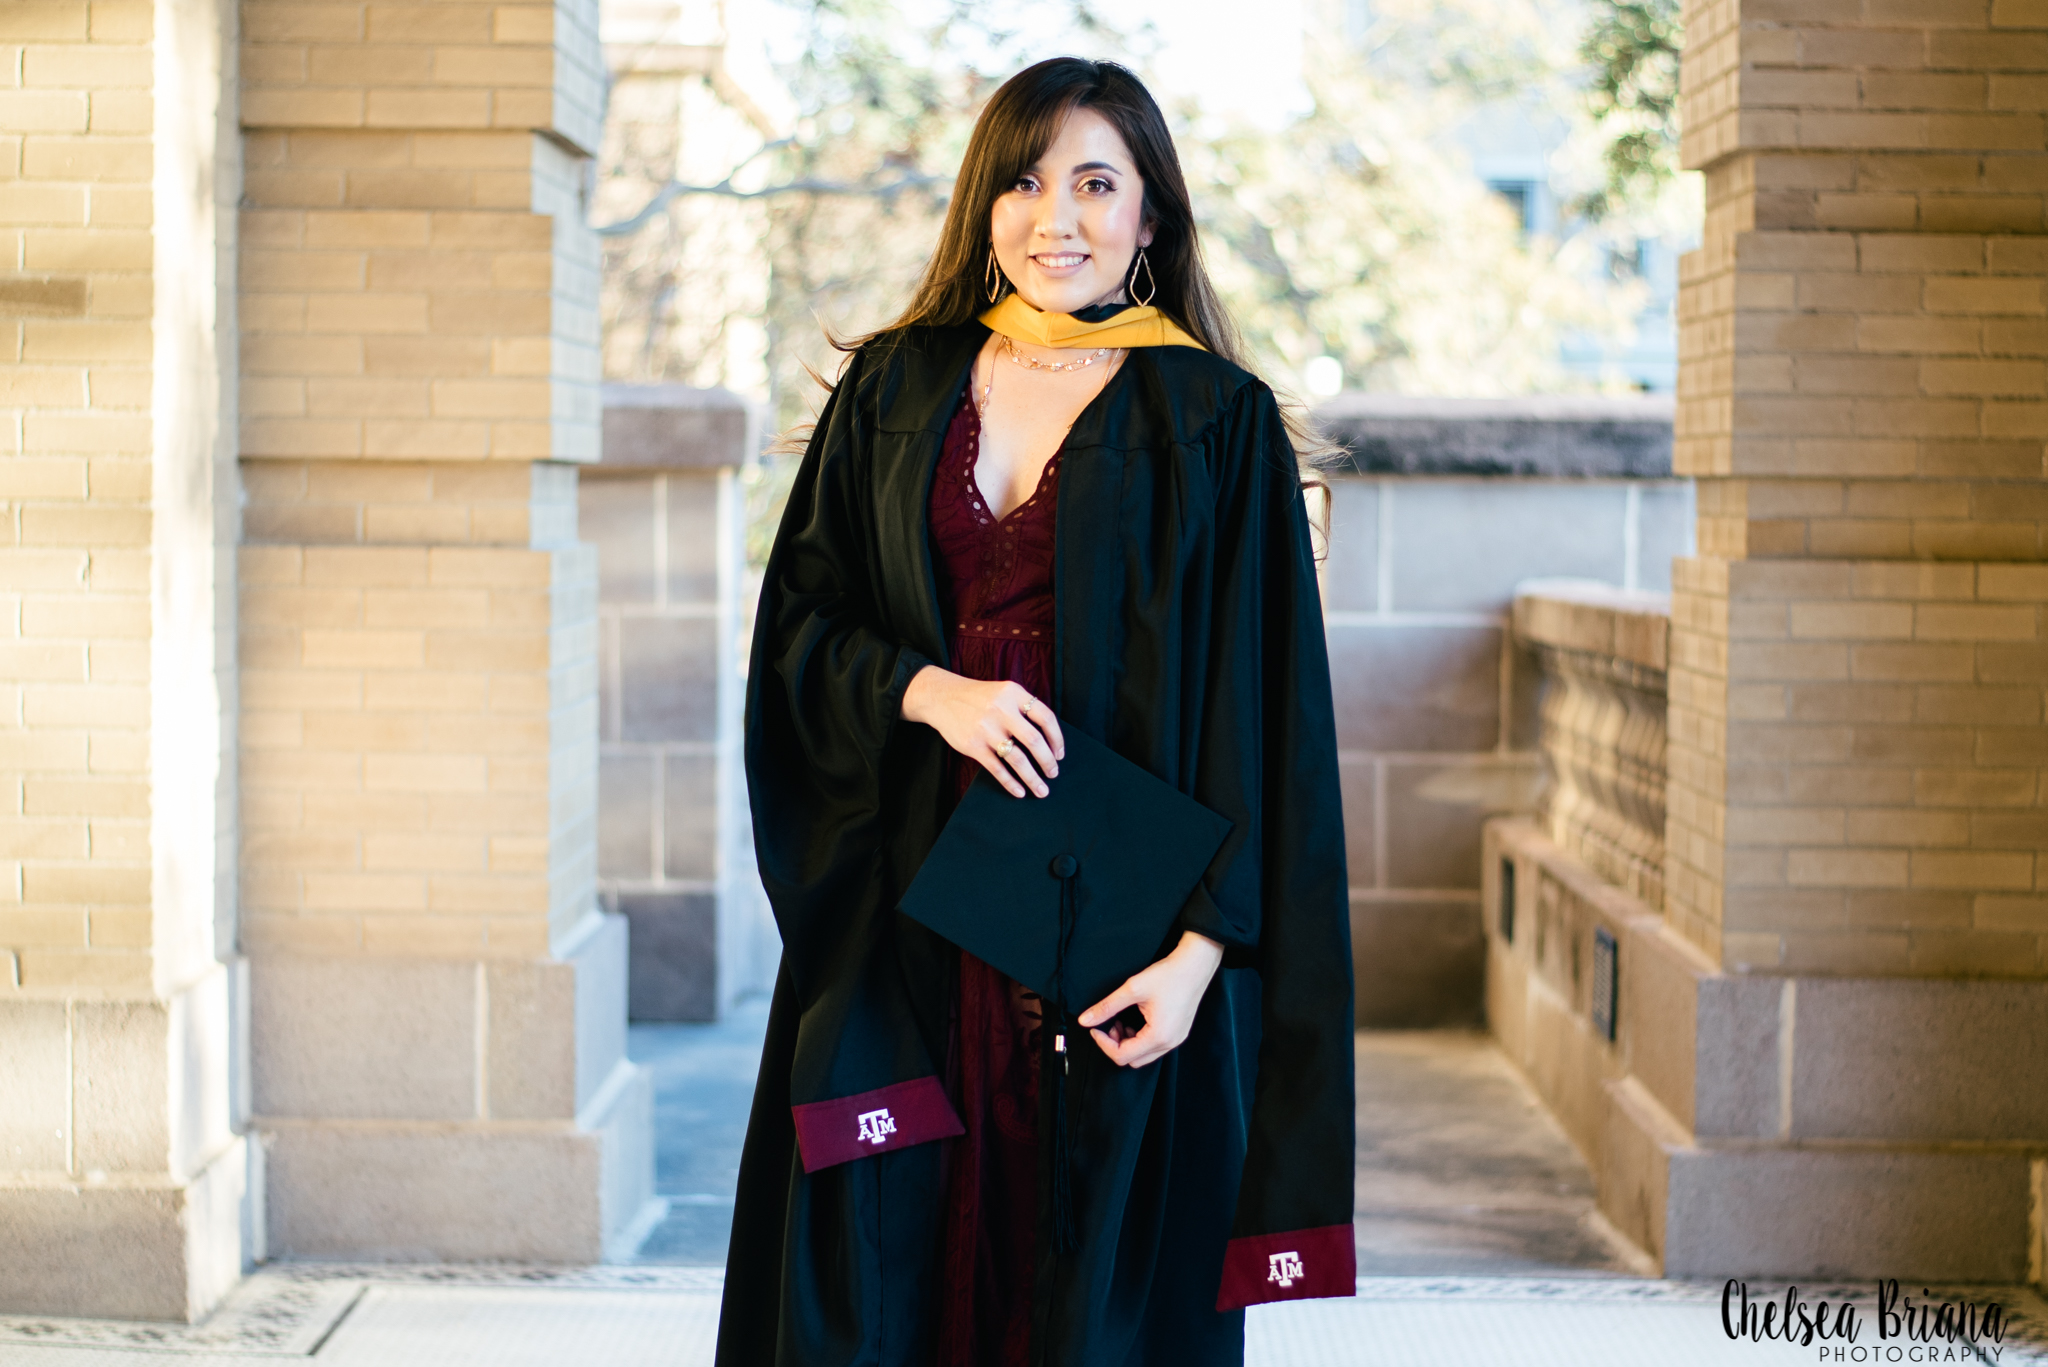 Texas A&M cap and gown